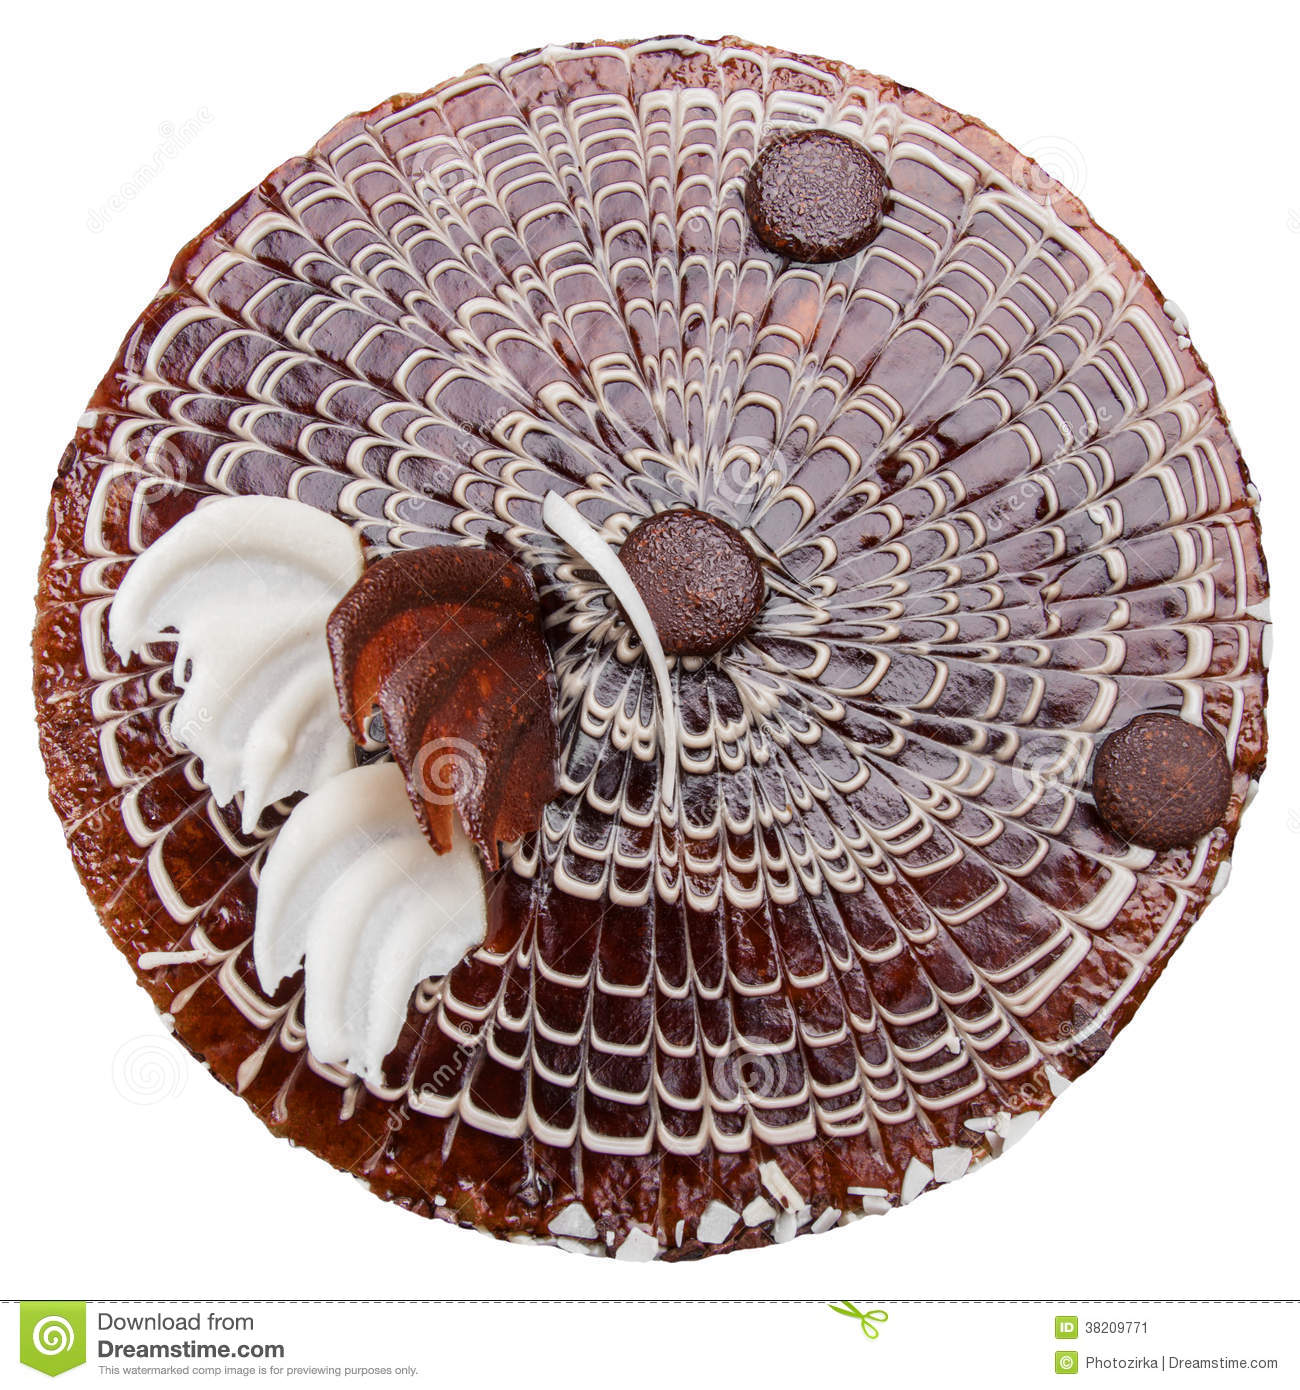 Cake Images Top View : Milk Chocolate Cake Top View Stock Image - Image: 38209771